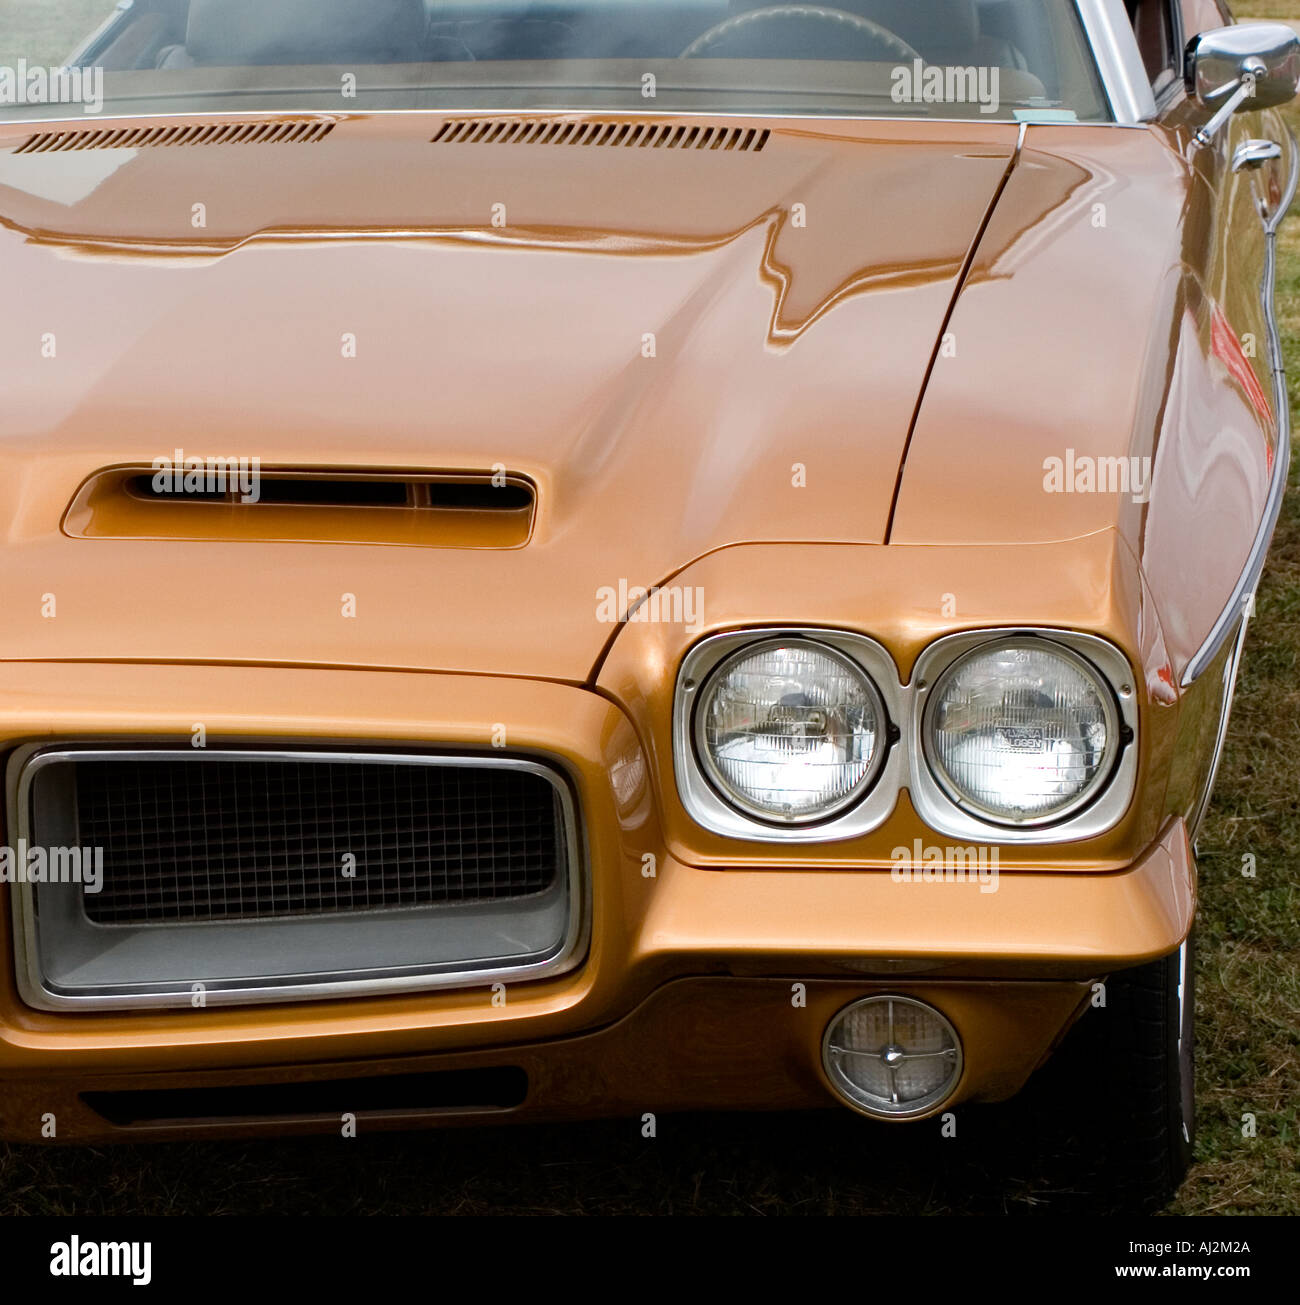 hight resolution of 1972 pontiac lemans convertible front view